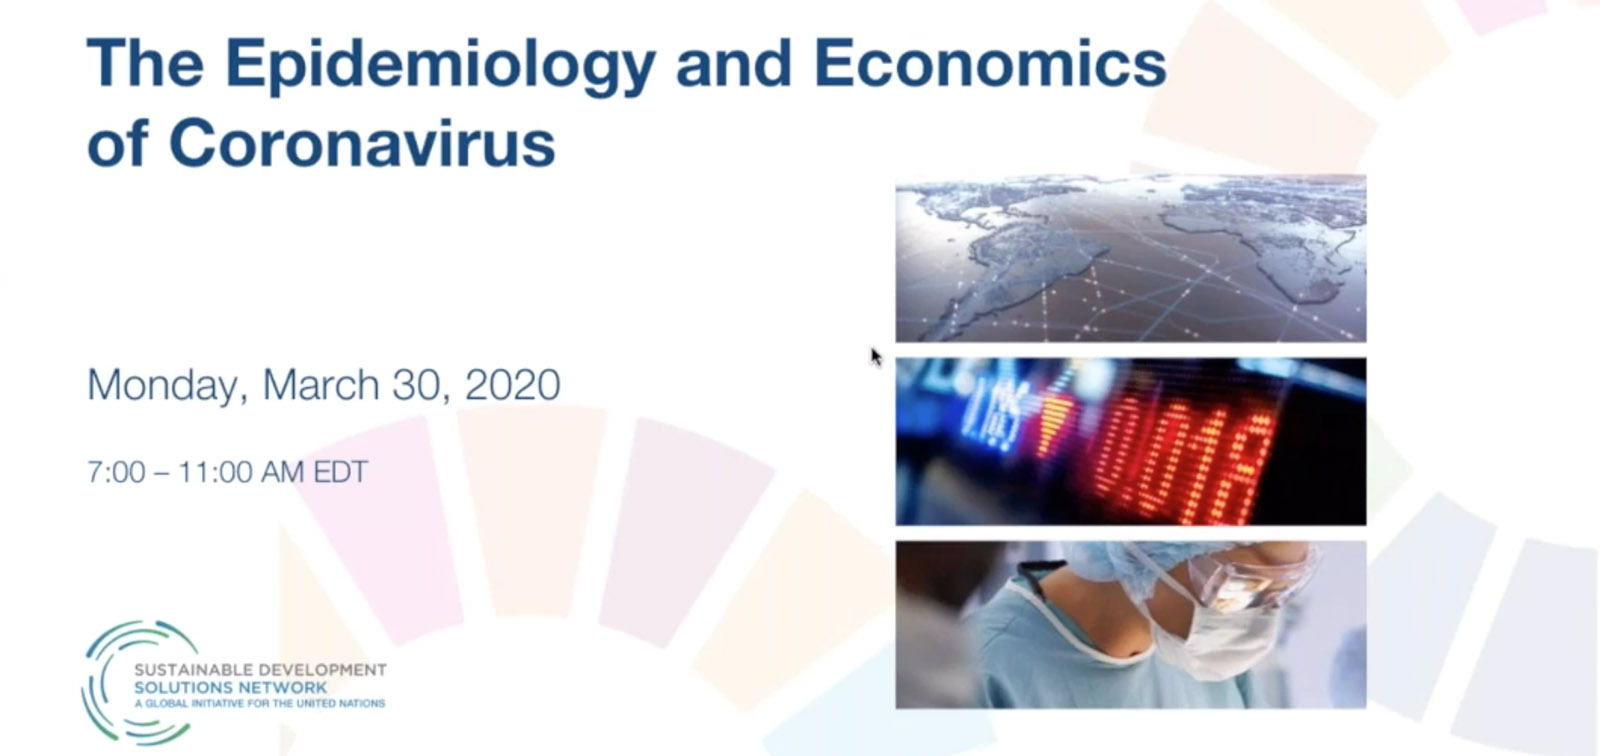 The Epidemiology and Economics of Coronavirus